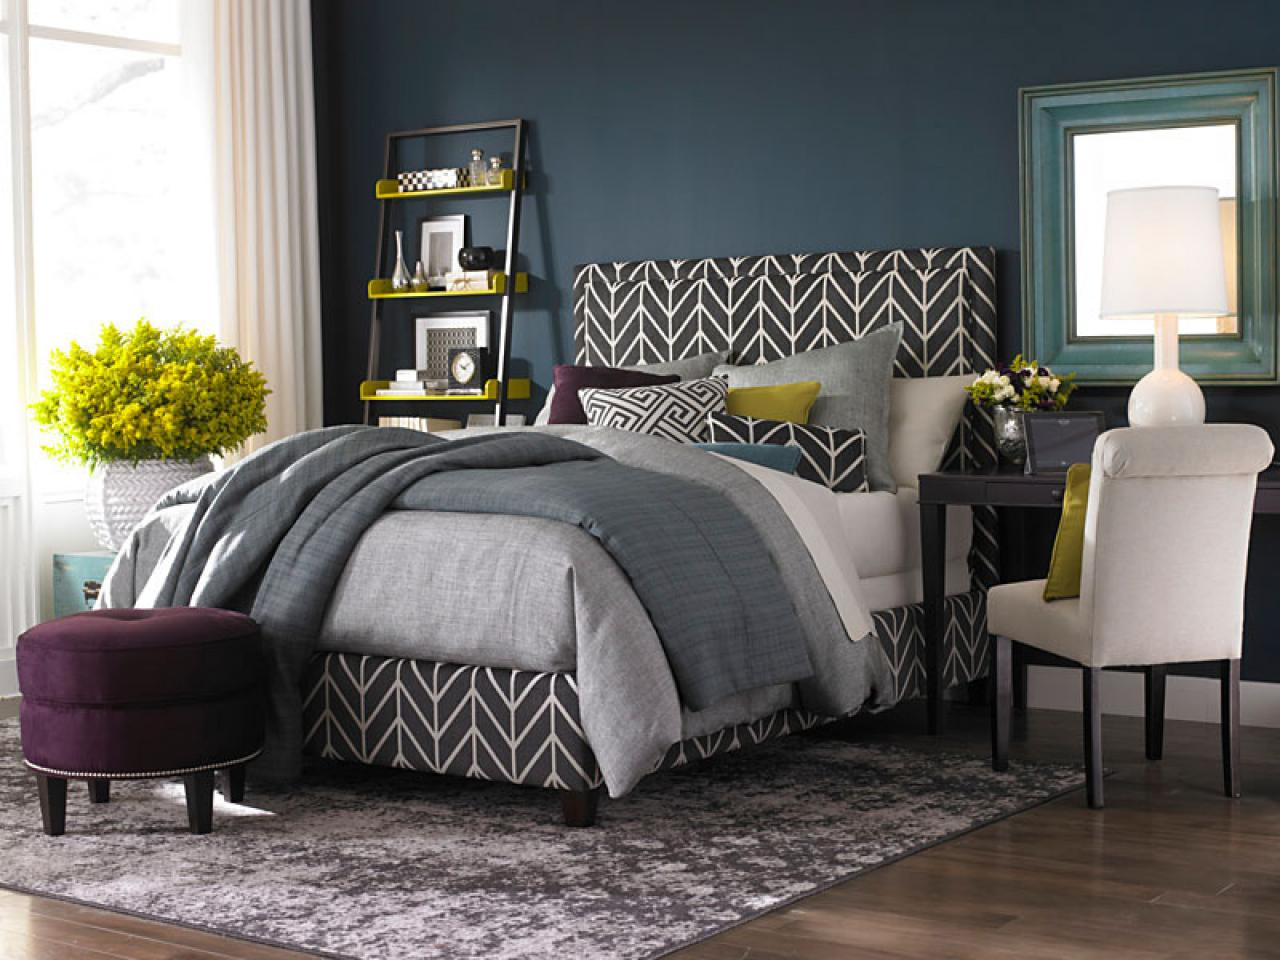 Stylish sexy bedrooms bedrooms bedroom decorating for Bedroom designs and colors